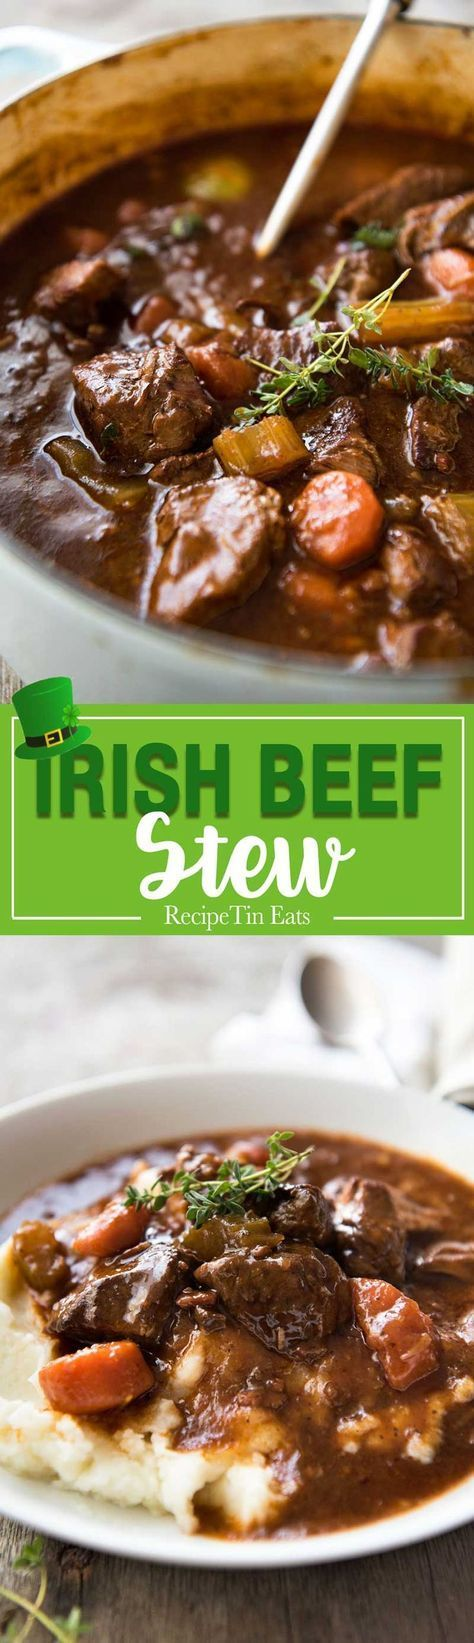 Irish Beef and Guinness Stew - The king of all stews! Fork tender beef in a rich thick sauce. Easy to make, just requires patience! Slow cooker, stove, oven and pressure cooker directions provided. www.recipetineats...